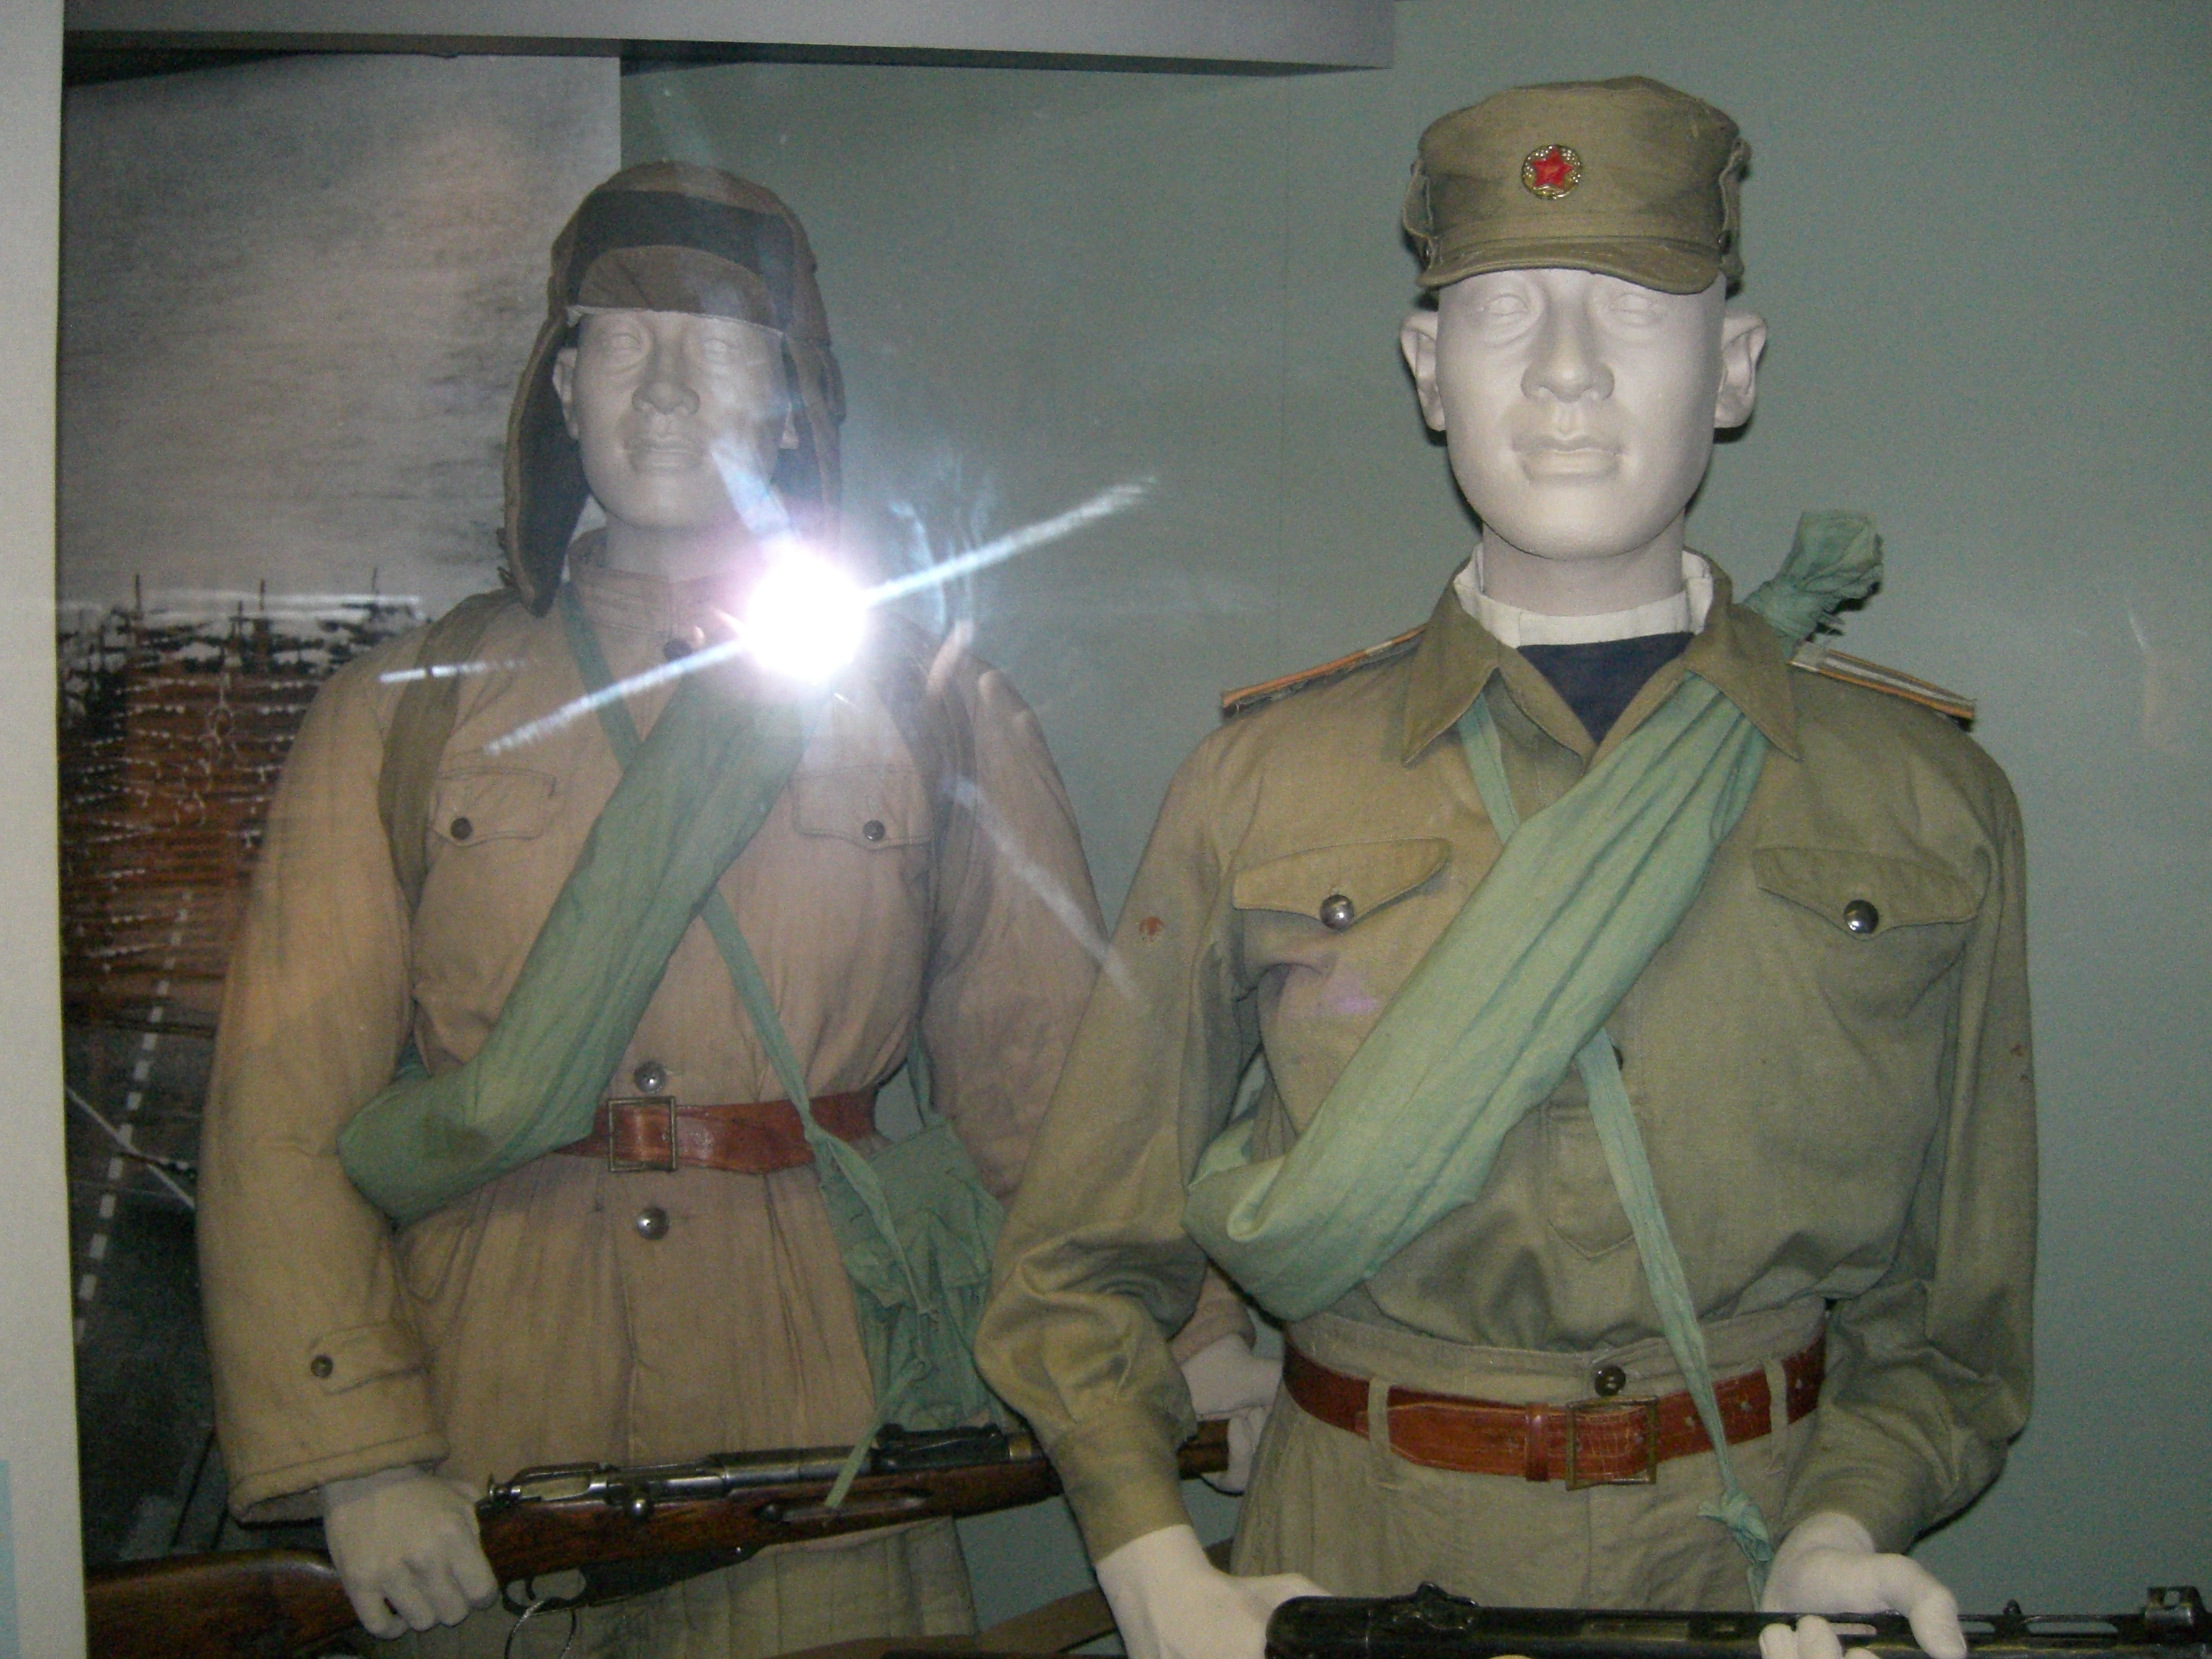 File:Korean War uniform JPG - Wikimedia Commons